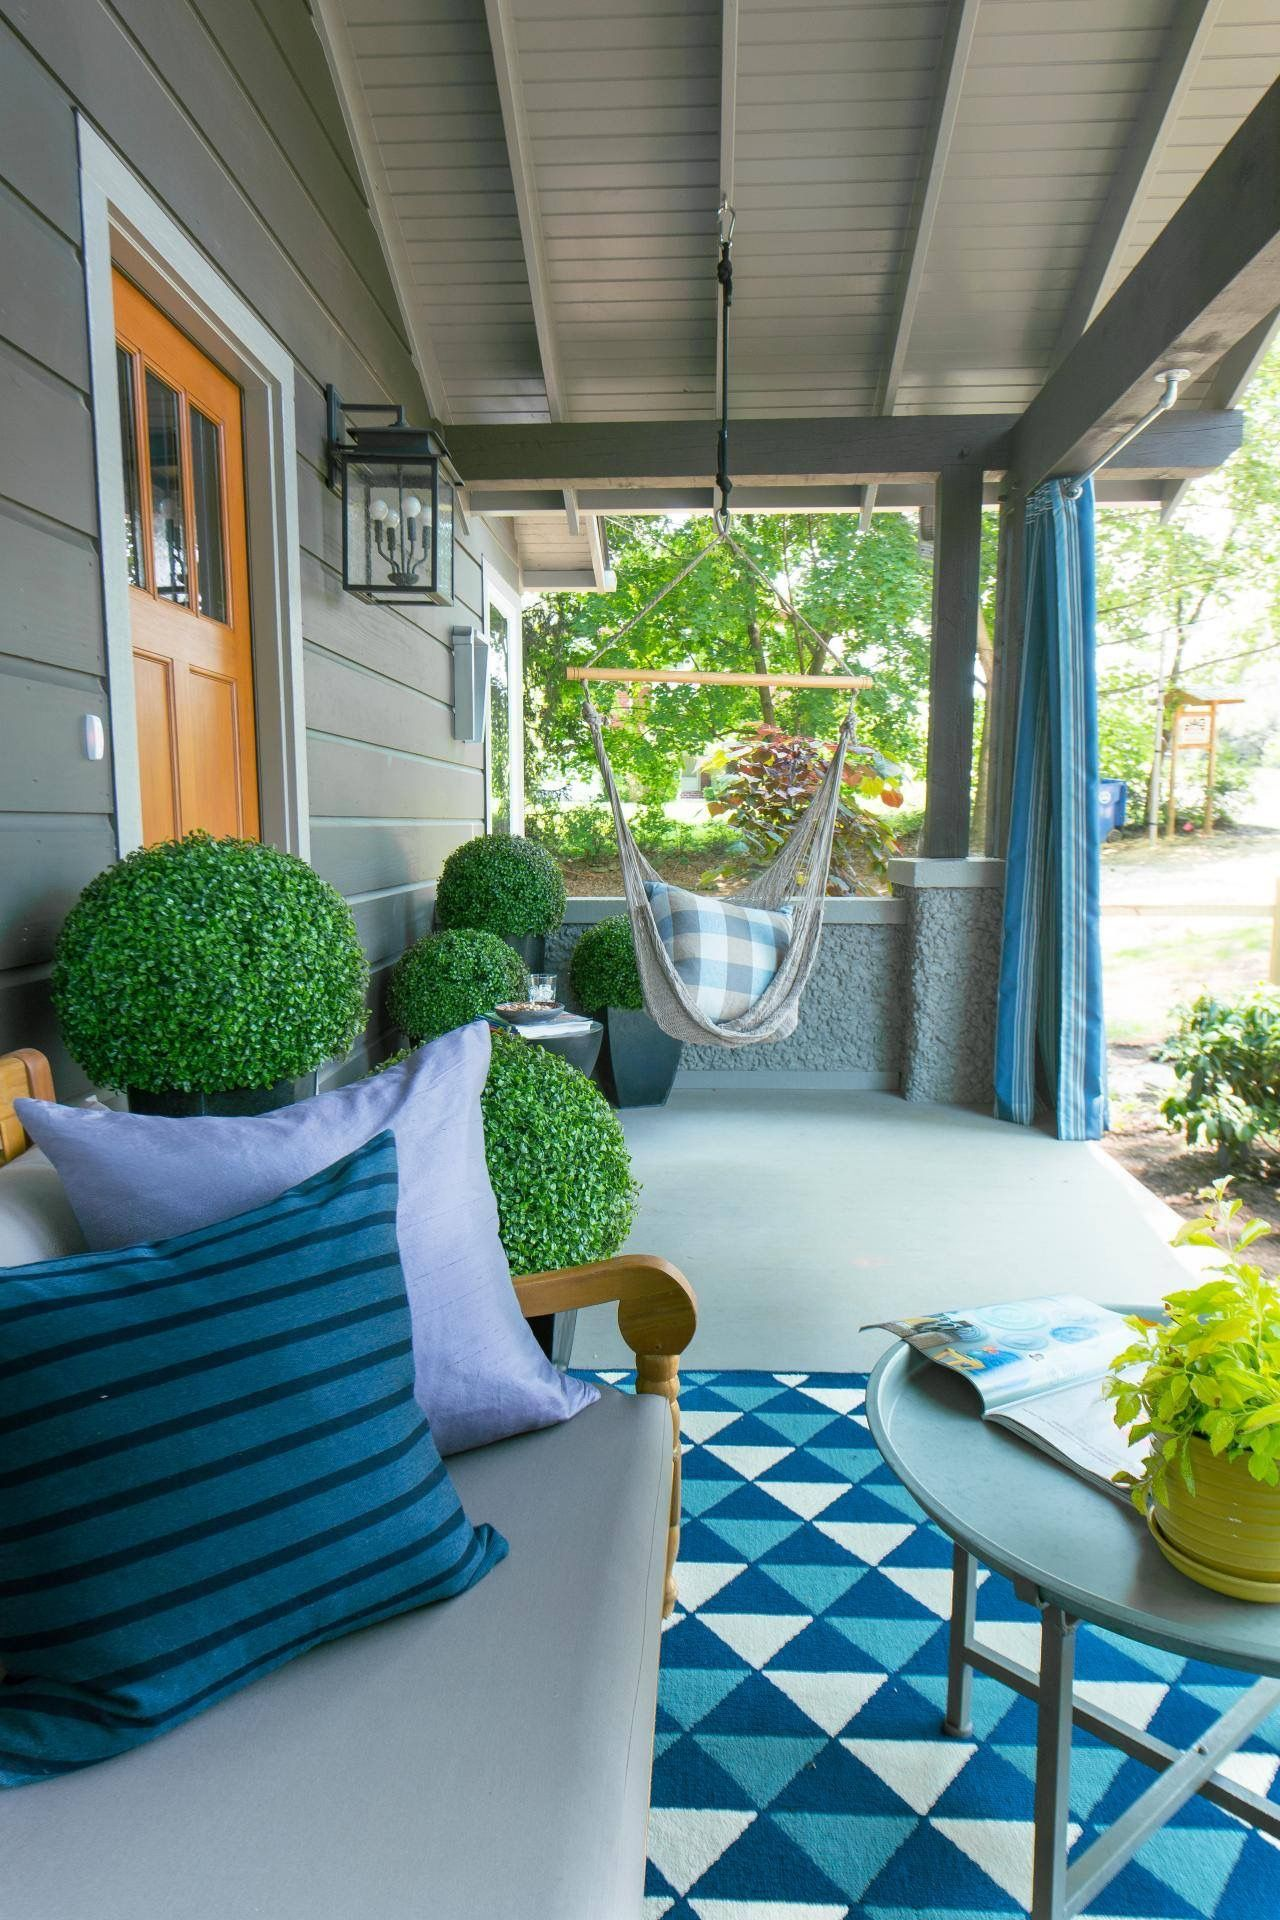 Pin By Danielle Albright On Porches Exterior Design Front Porch